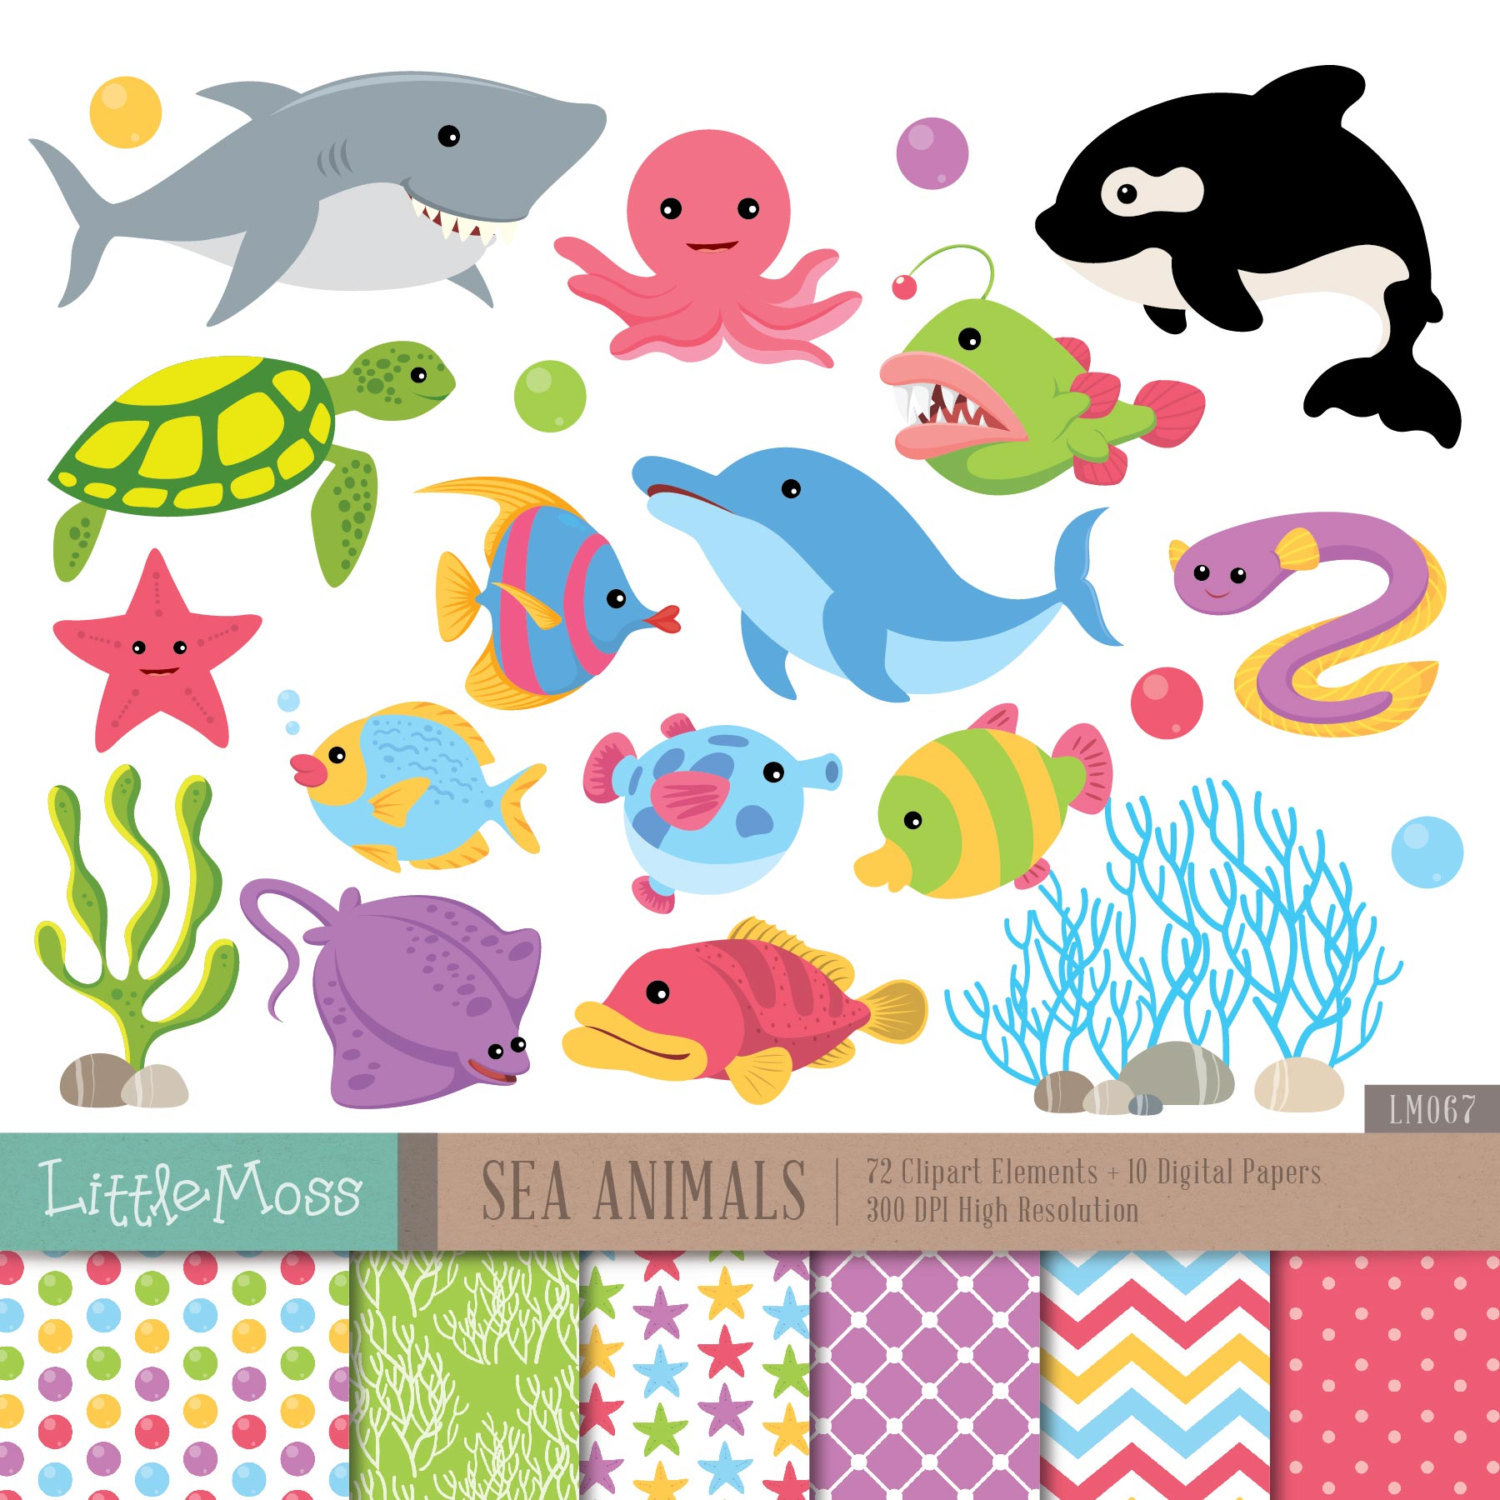 Sea Animals Digital Clipart and Papers, Under The Sea Clipart, Whale, Dolphin, Turtle, Coral, Shark Clipart